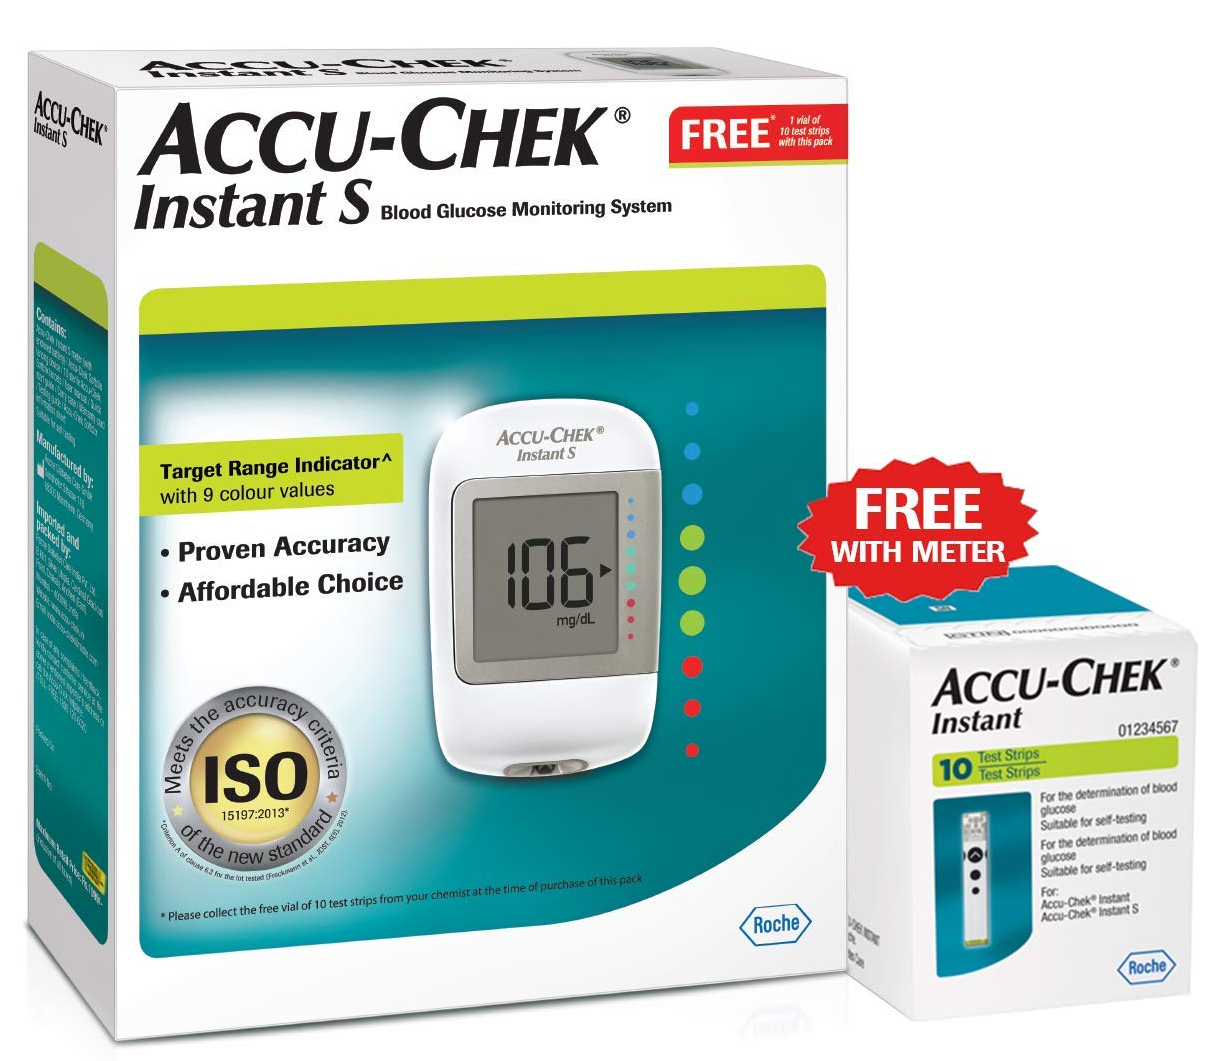 Accu-Chek Instant S Blood Glucometer with 10 Test Strip Free